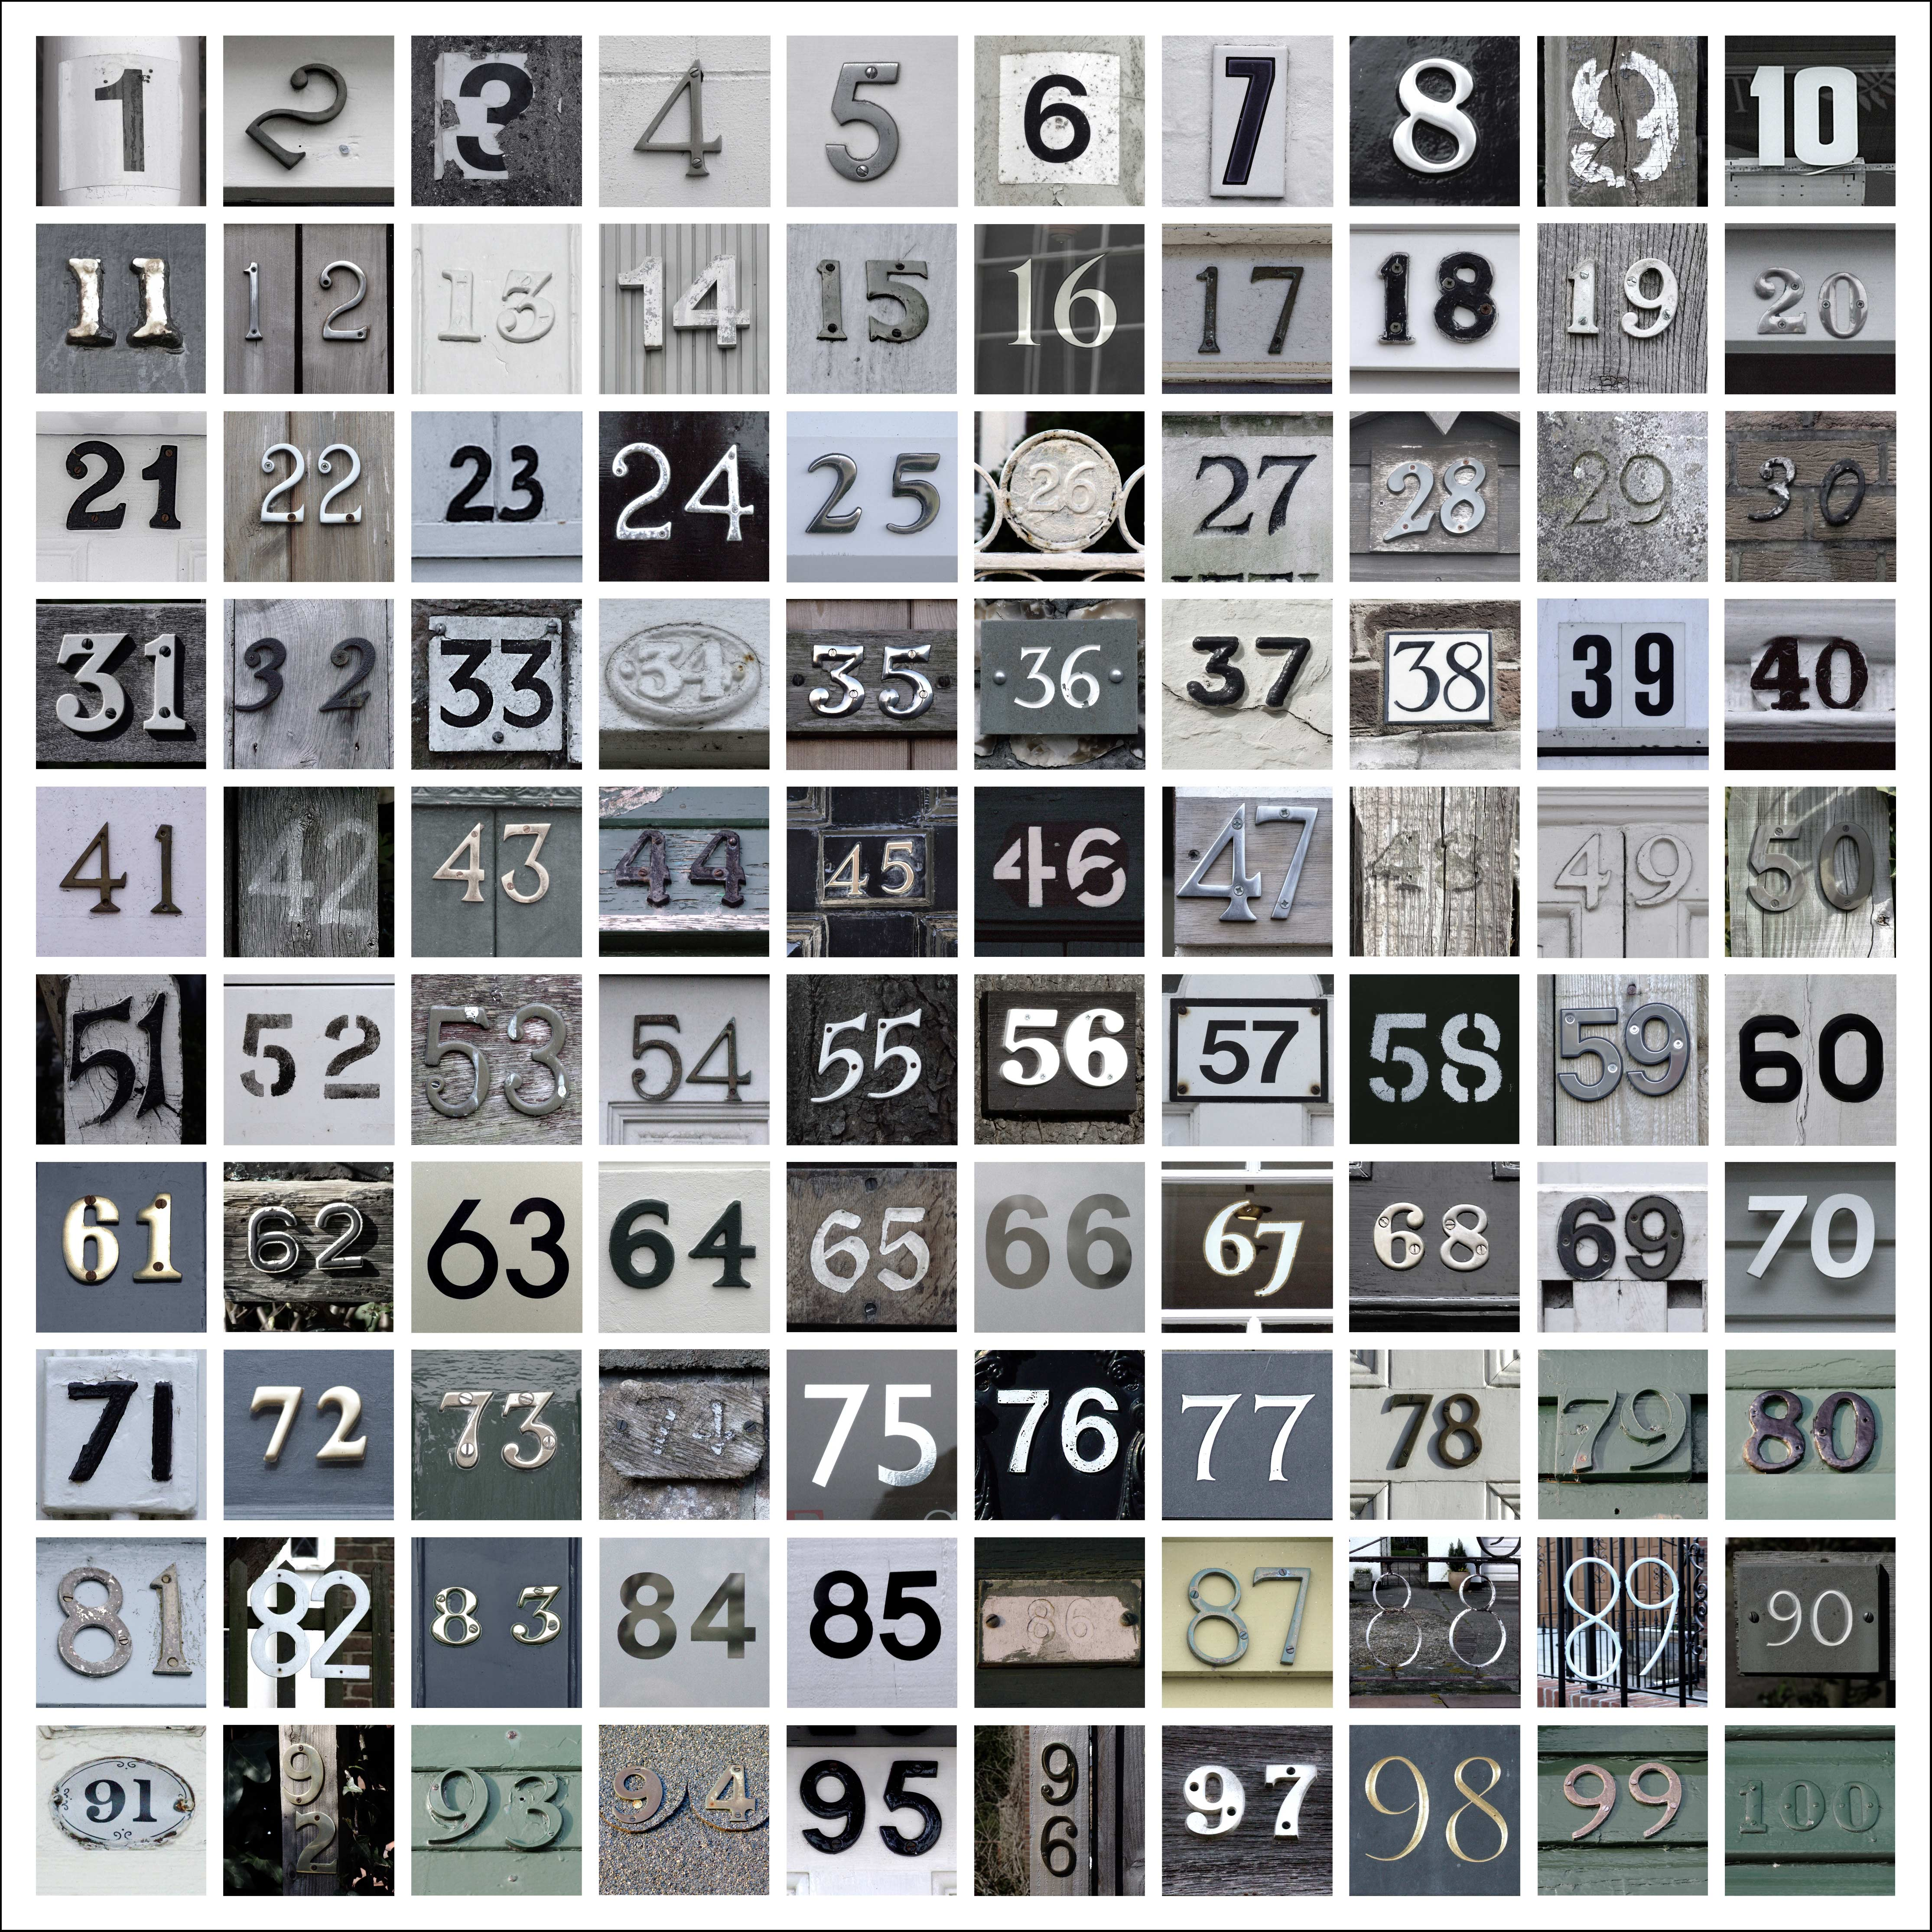 Number Square - Monochrome